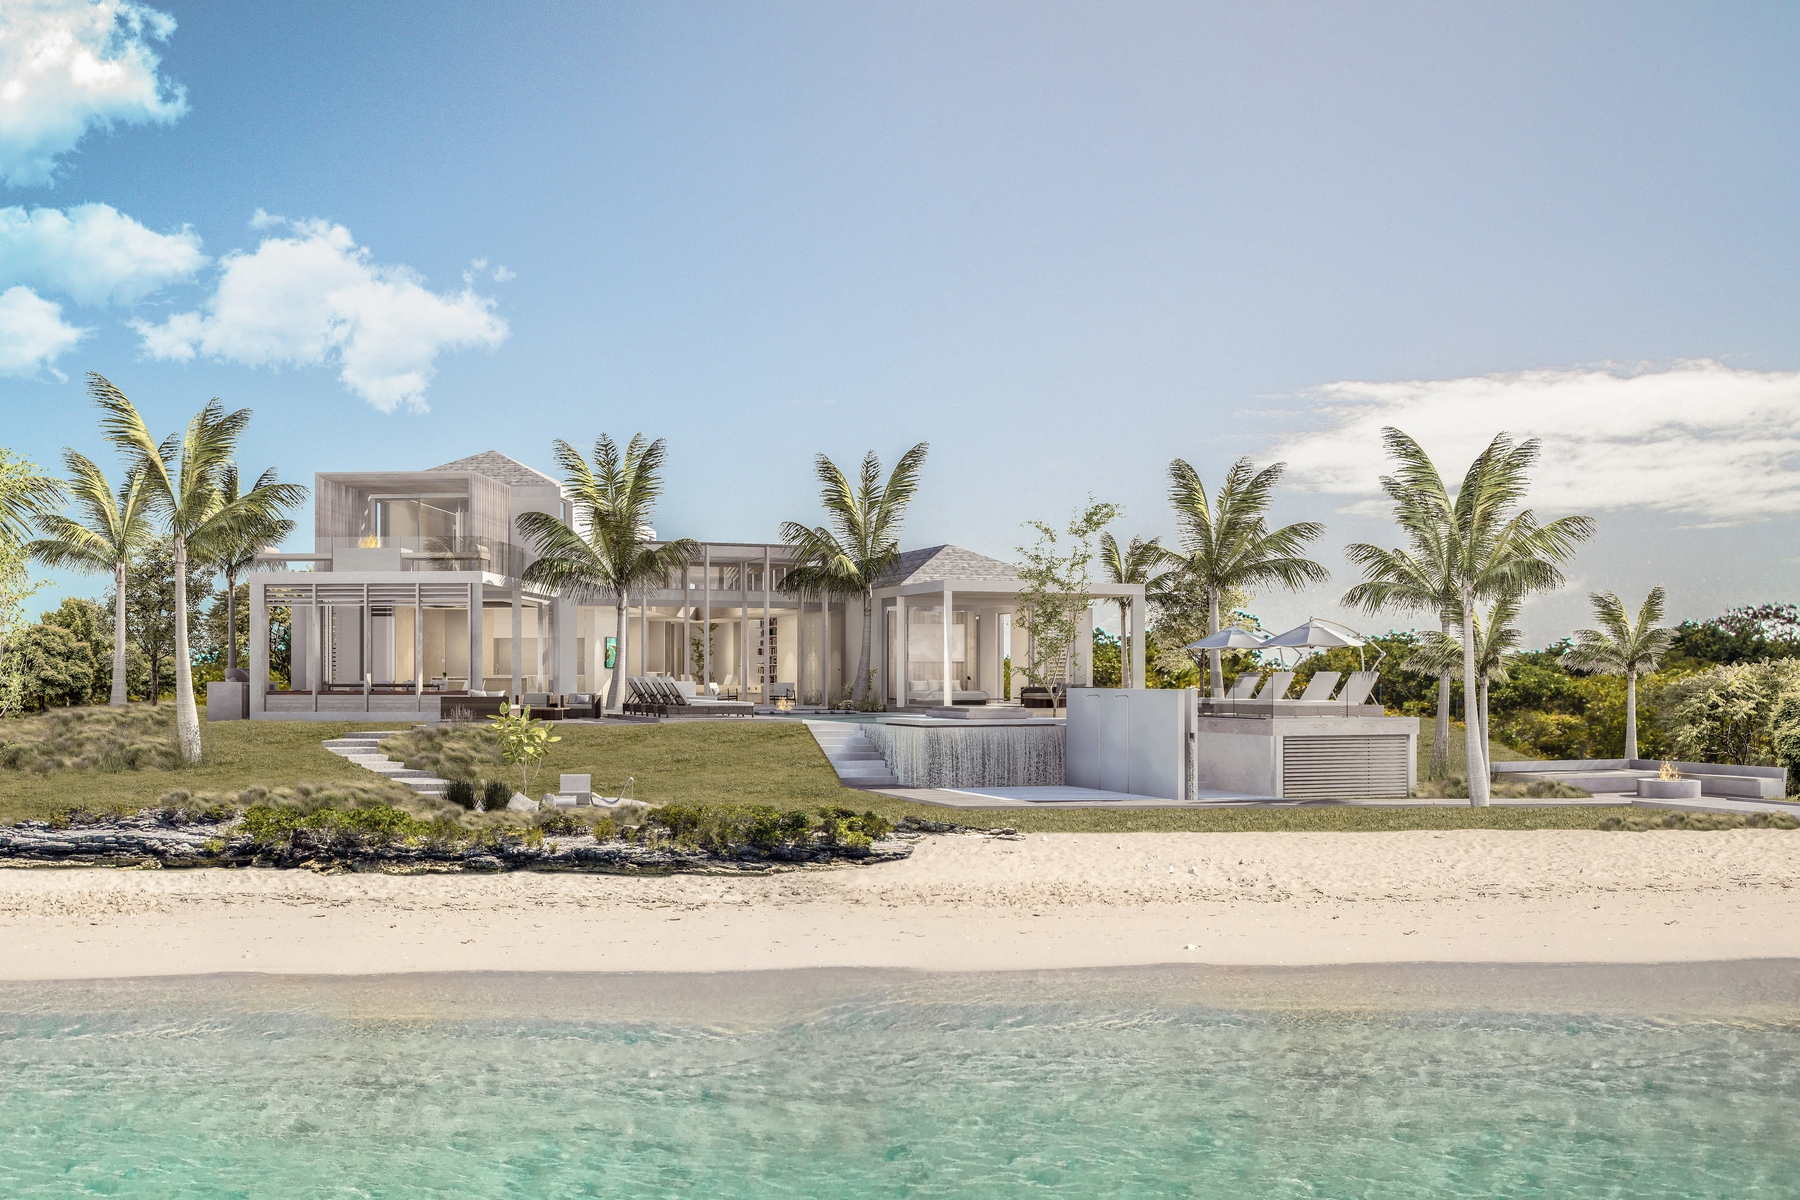 Single Family Home for Sale at Panorama Y House - Beachfront Lot 1 Blue Cay Estate, Leeward, Turks And Caicos Islands